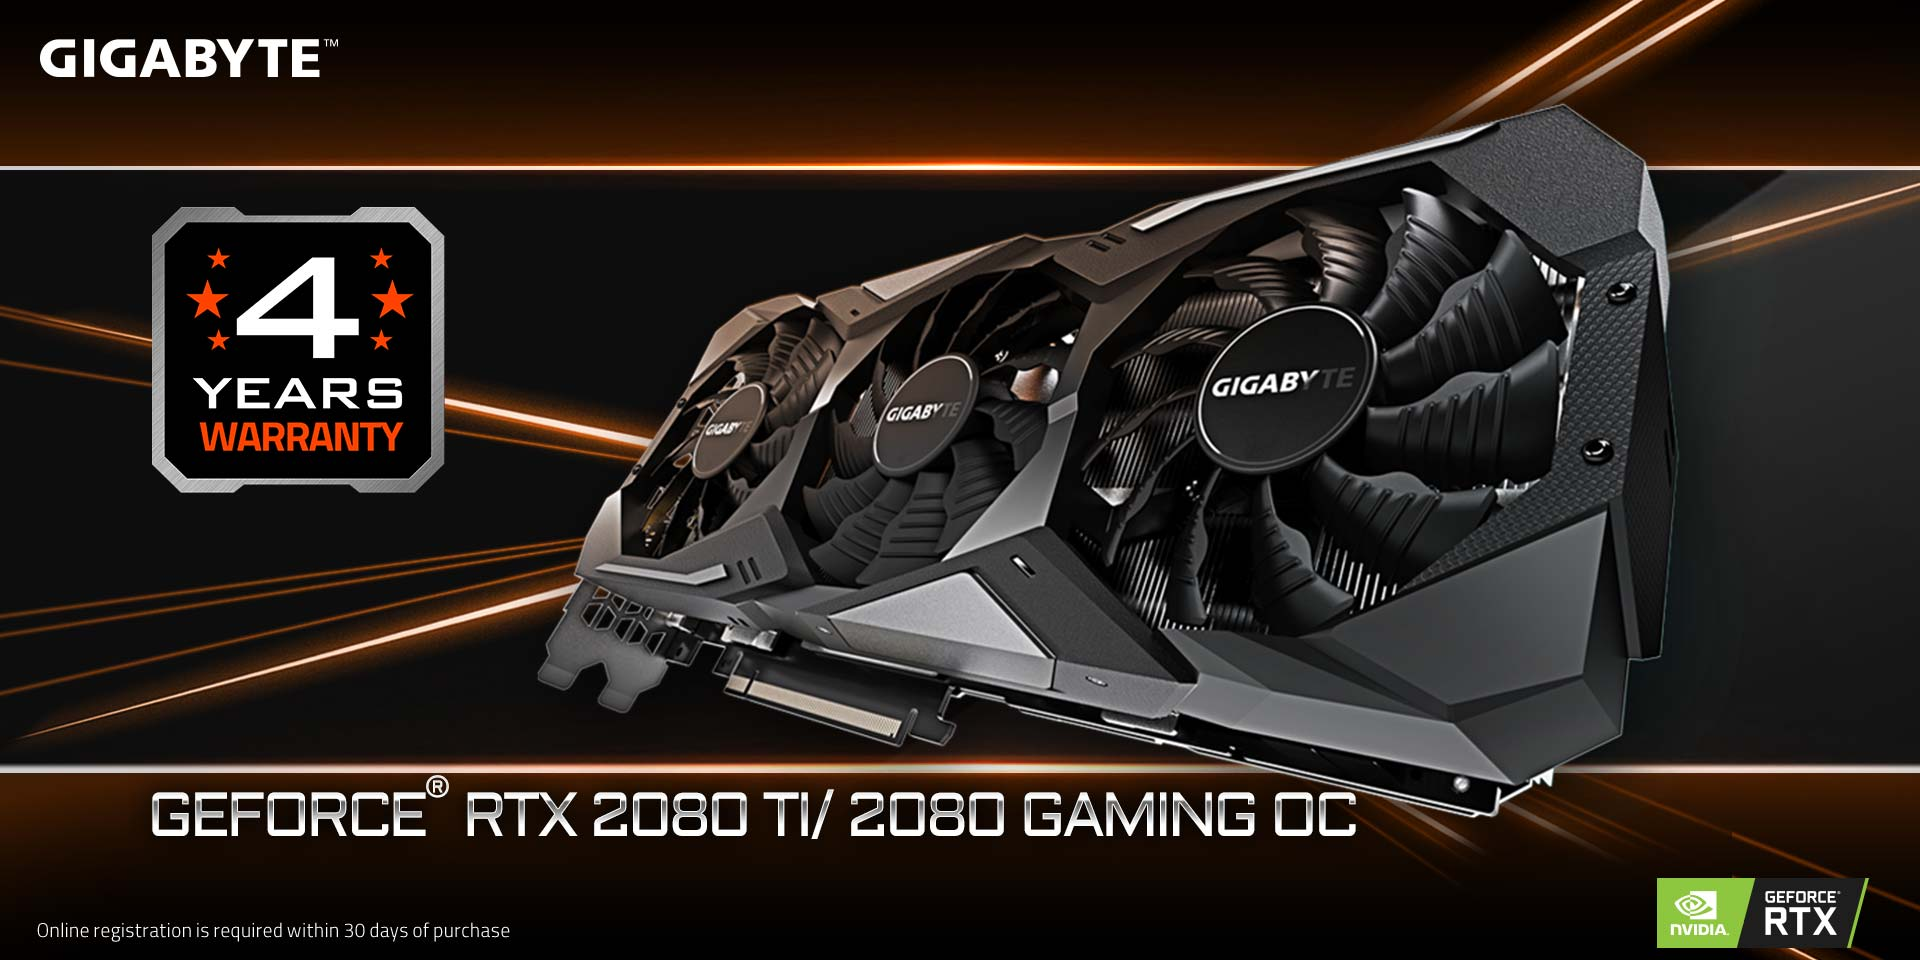 GIGABYTE RTX 2080 Ti/ 2080 Gaming OC 4 Year Warranty